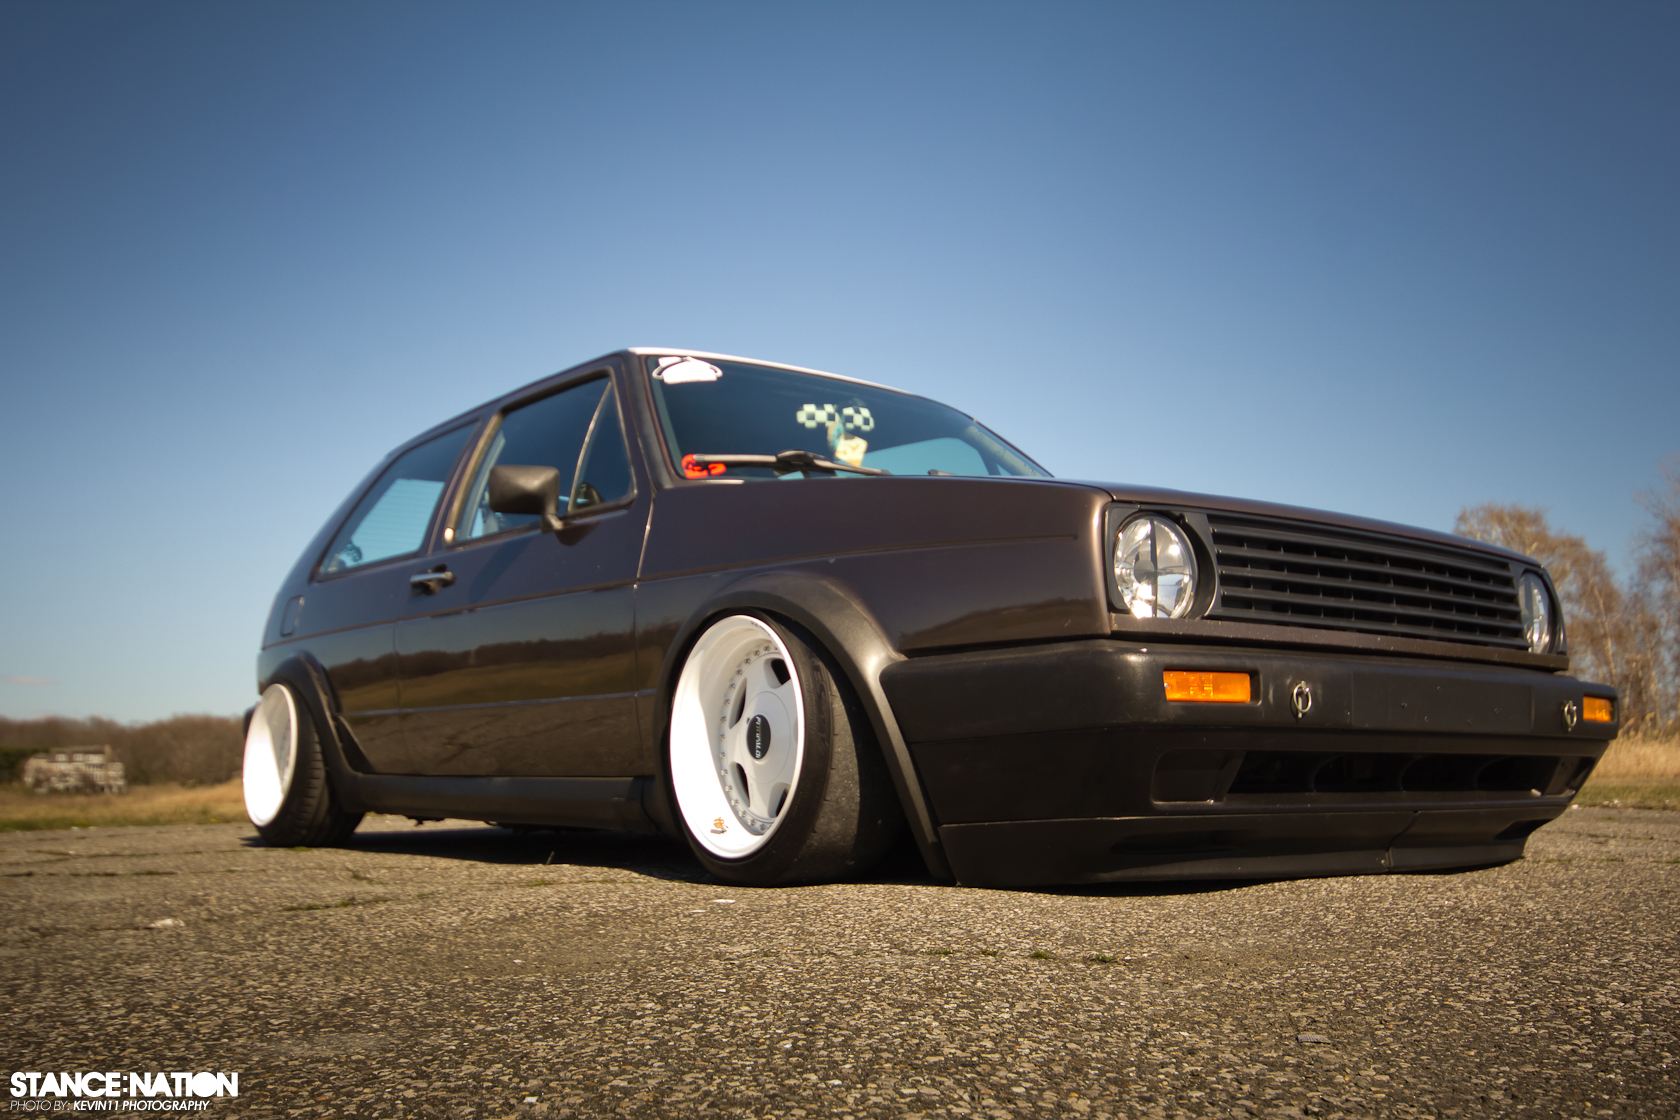 On The Ground. | StanceNation™ // Form > Function